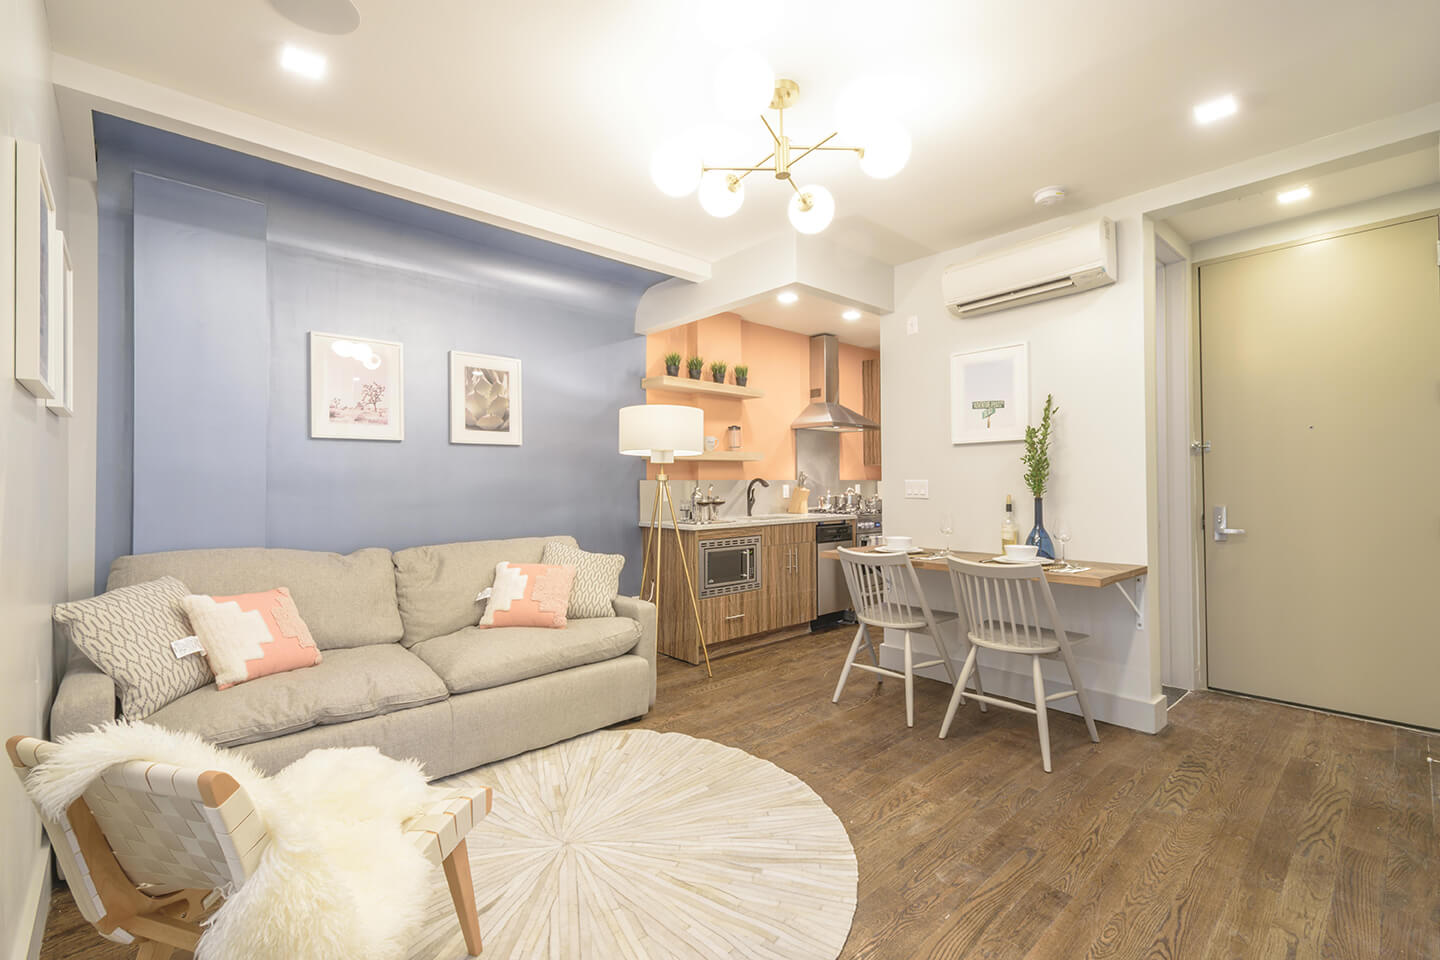 Private Furnished Bedroom In Shared Apartment. Modern 3 Bed 2 Bath, Flexible Lease for rent